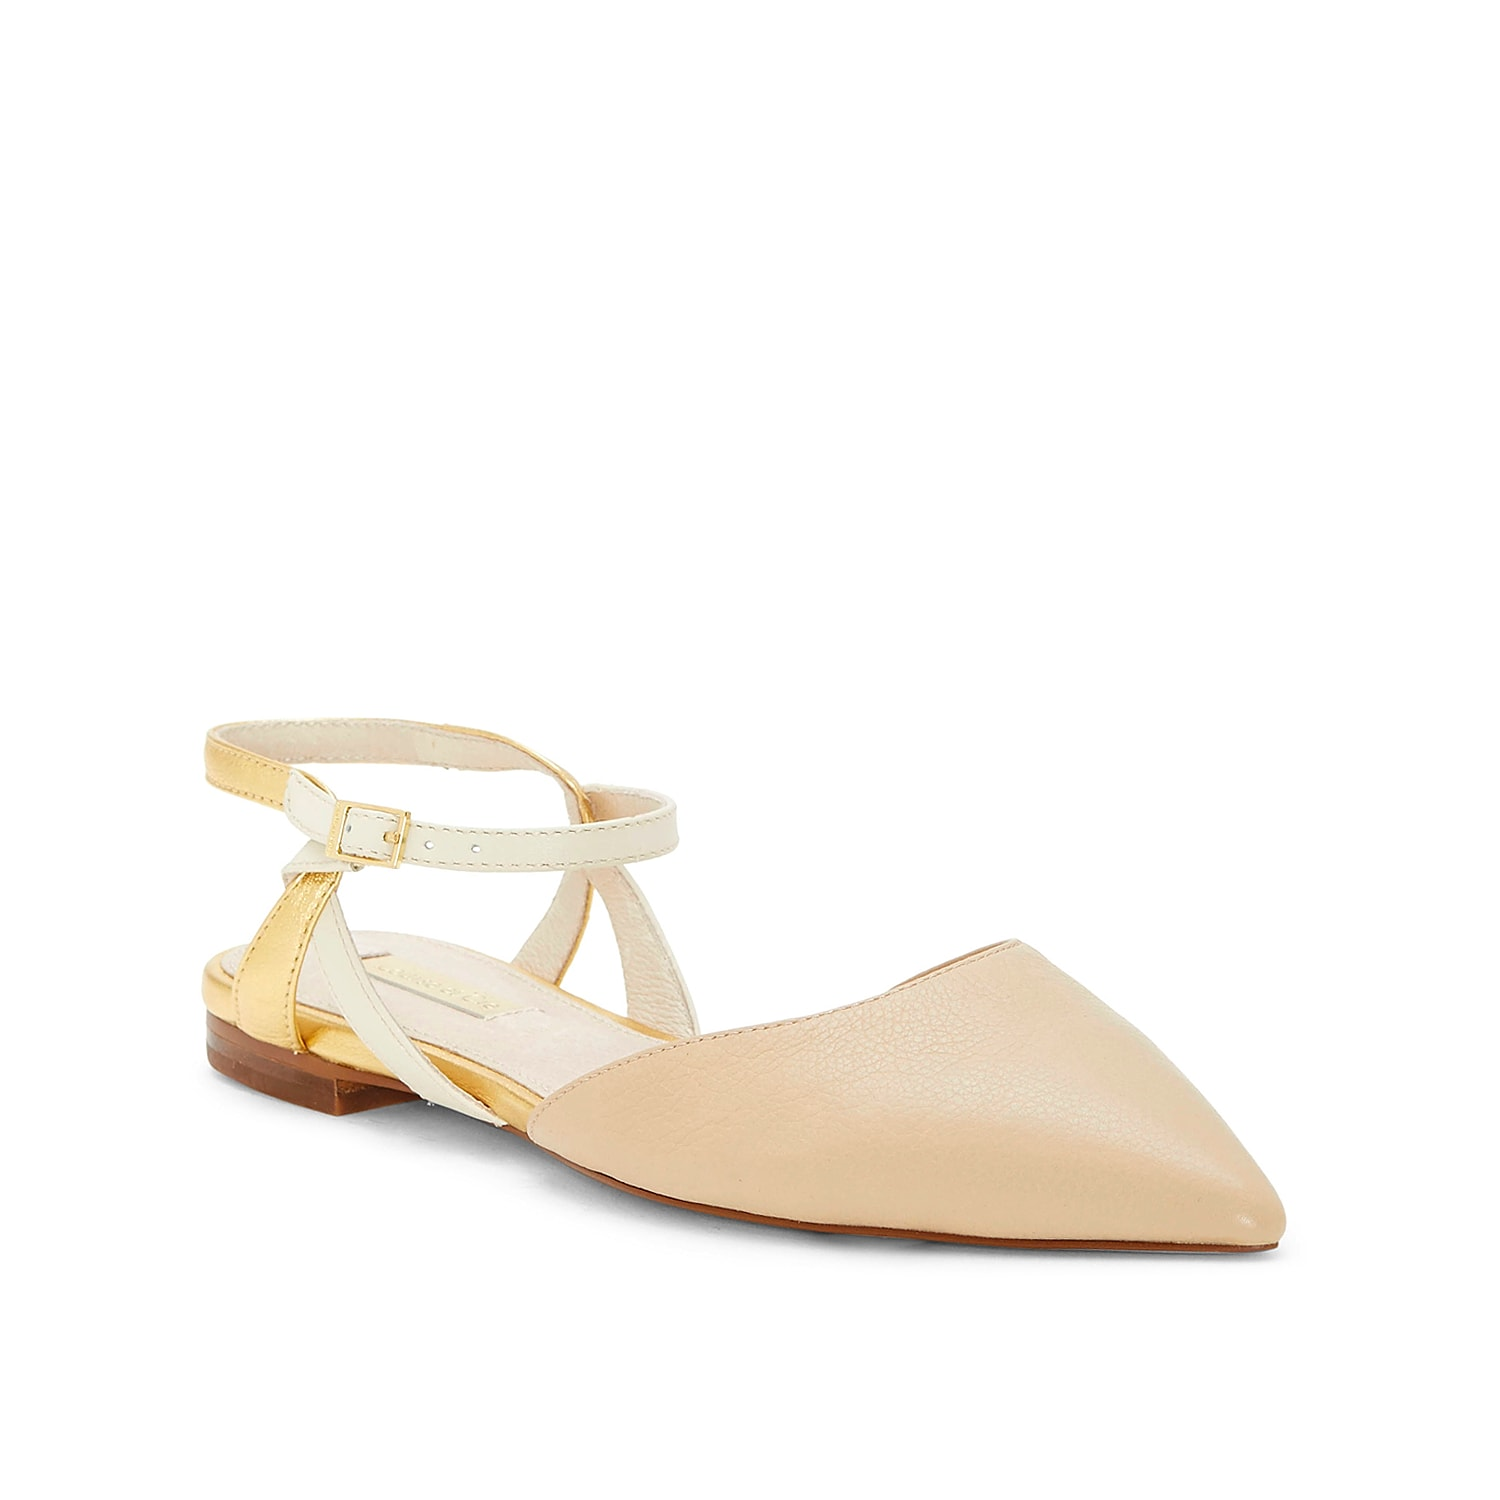 The Louise Et Cie Caledo flat provides pristine coverage when you need a closed-toe option. An open heel and quarter strap complete the silhouette.